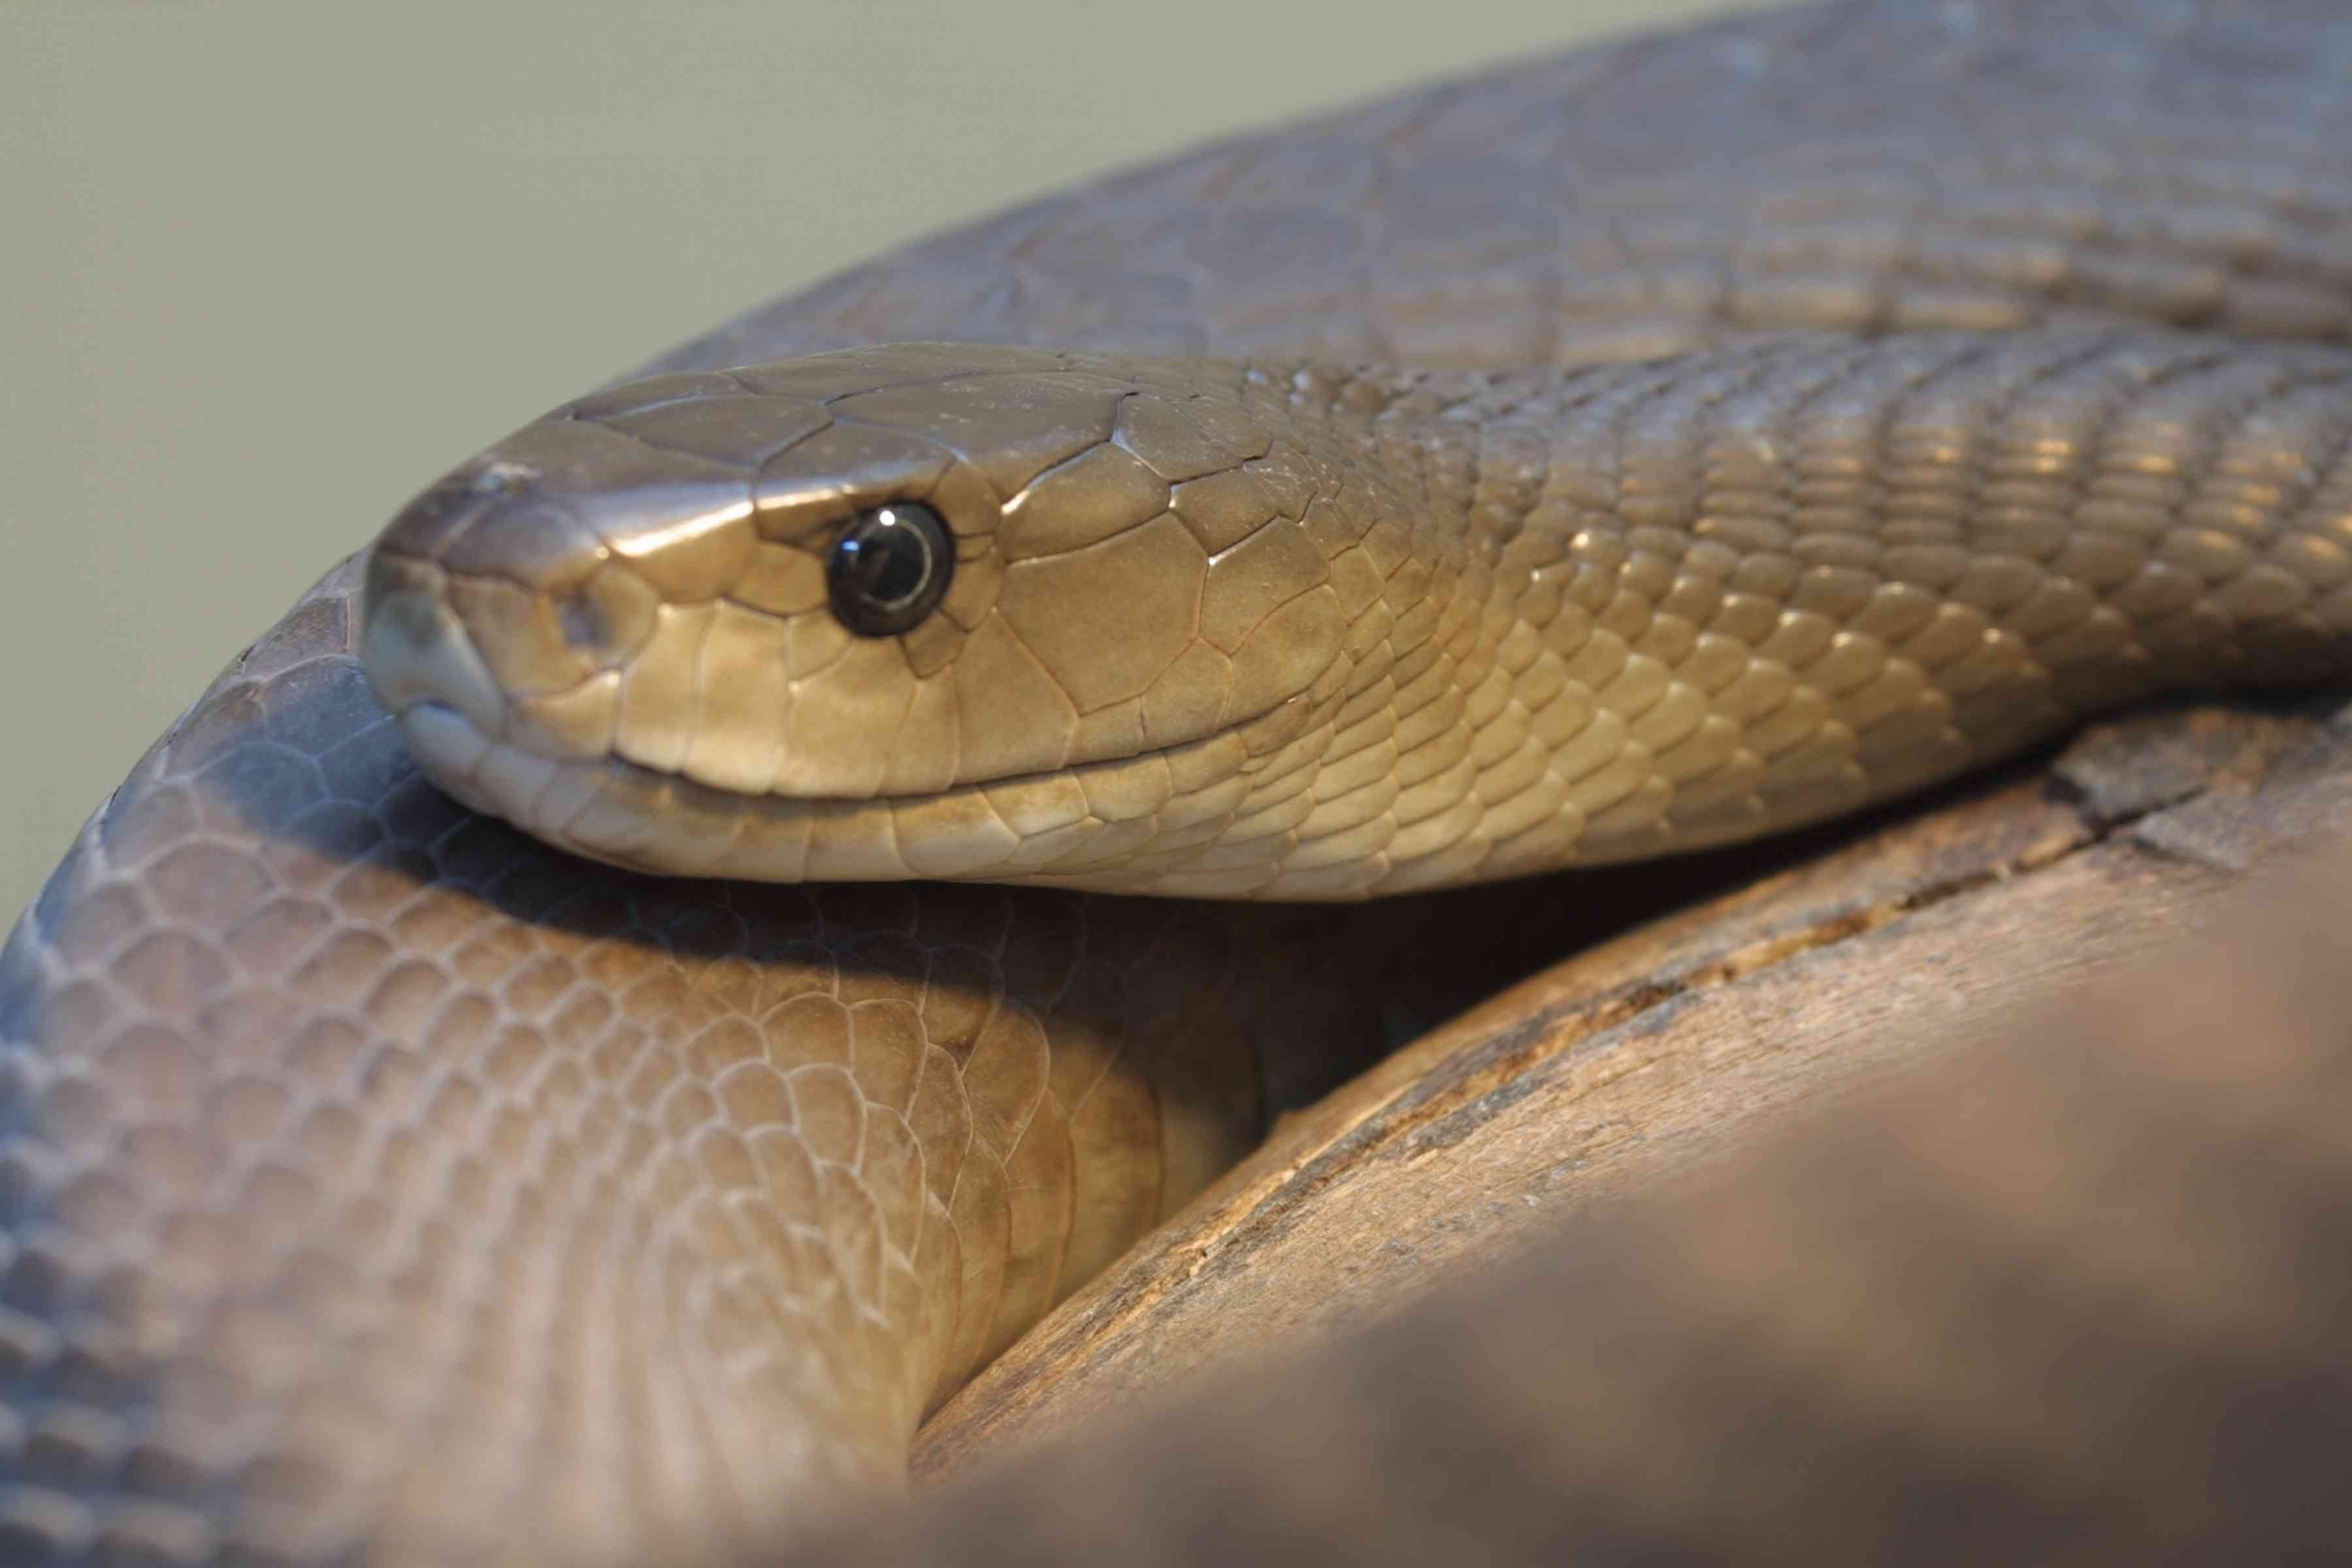 A Top 10 List of Africa's Most Dangerous Snakes